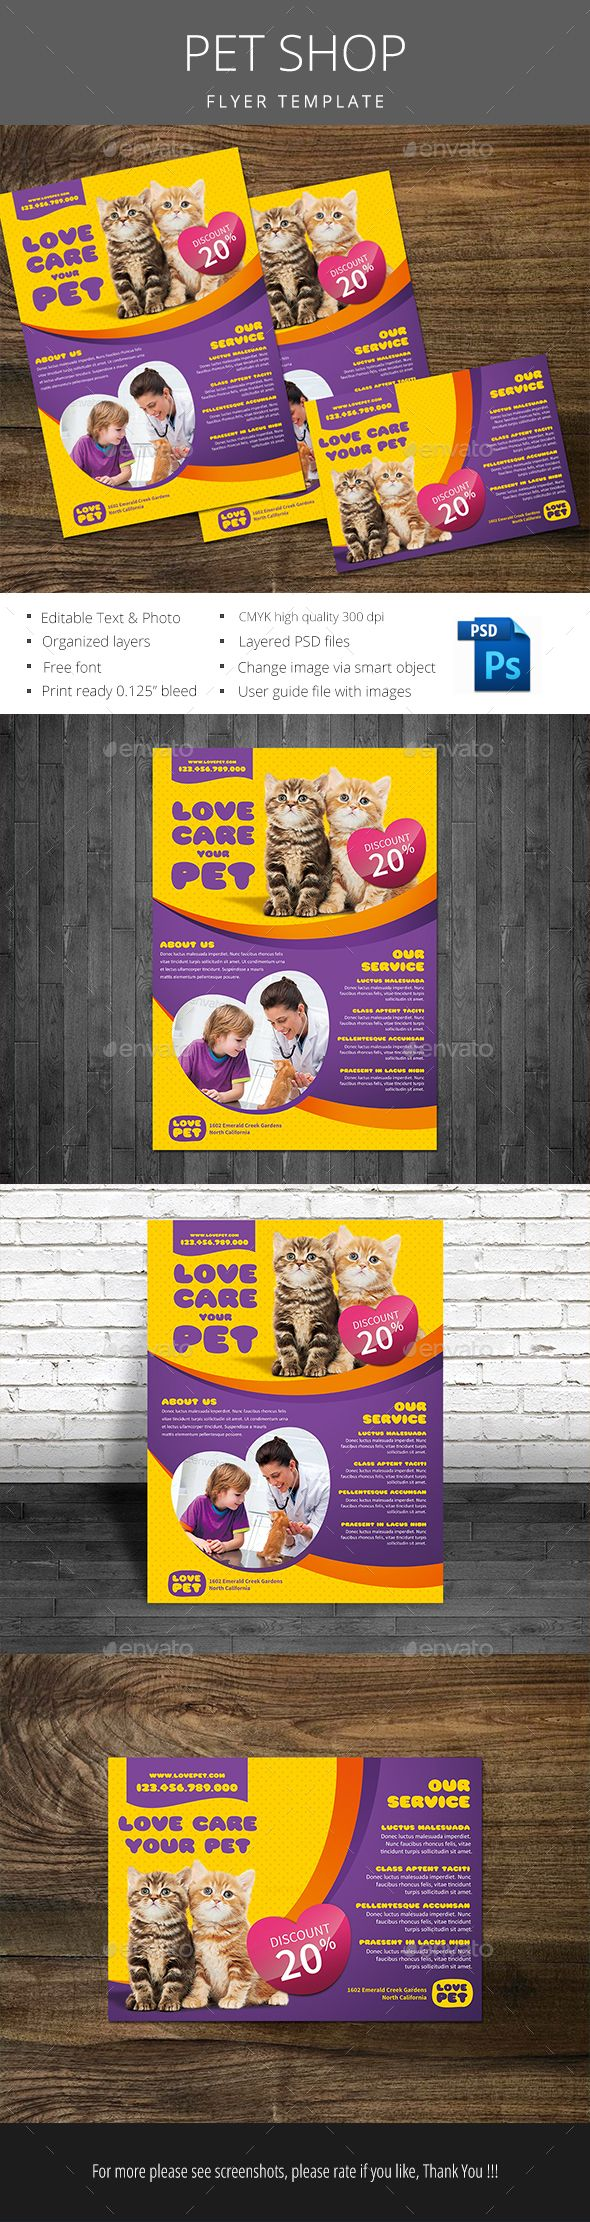 Pet Shop Flyer Template PSD. Download here: http://graphicriver.net/item/pet-shop-flyer/15111717?ref=ksioks